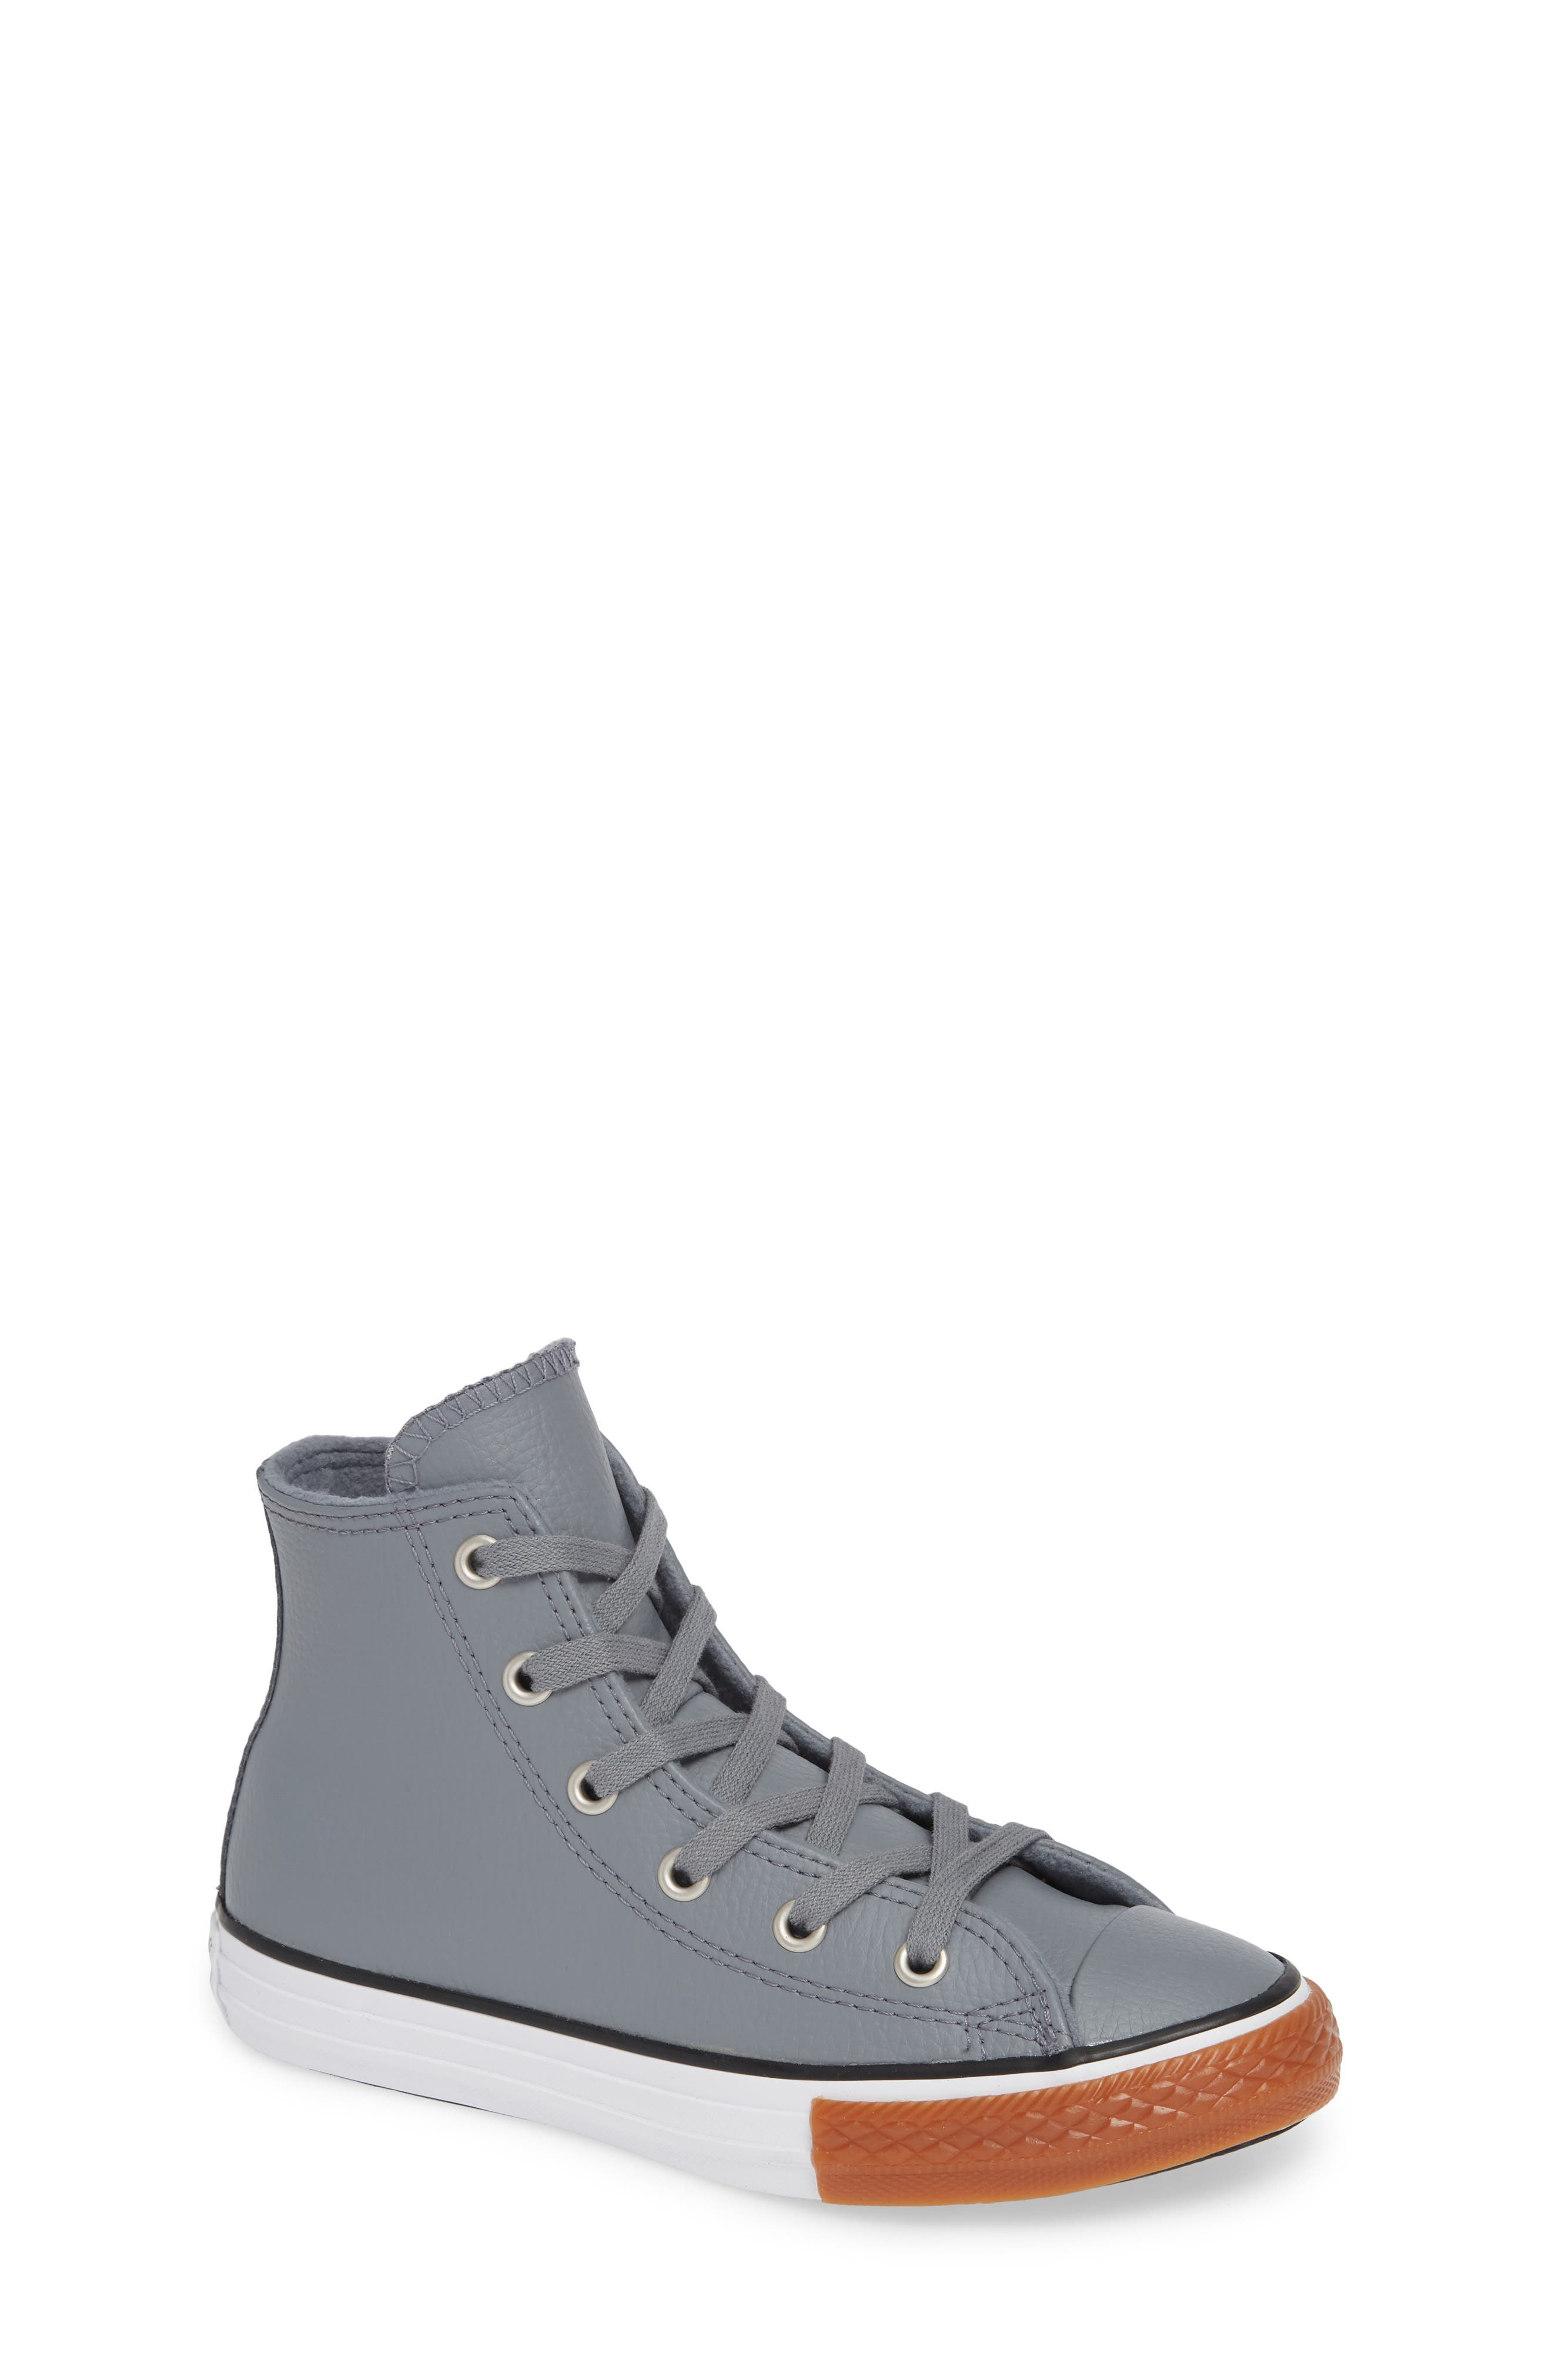 Chuck Taylor<sup>®</sup> All Star<sup>®</sup> No Gum In Class Leather High Top Sneaker,                             Main thumbnail 1, color,                             COOL GREY